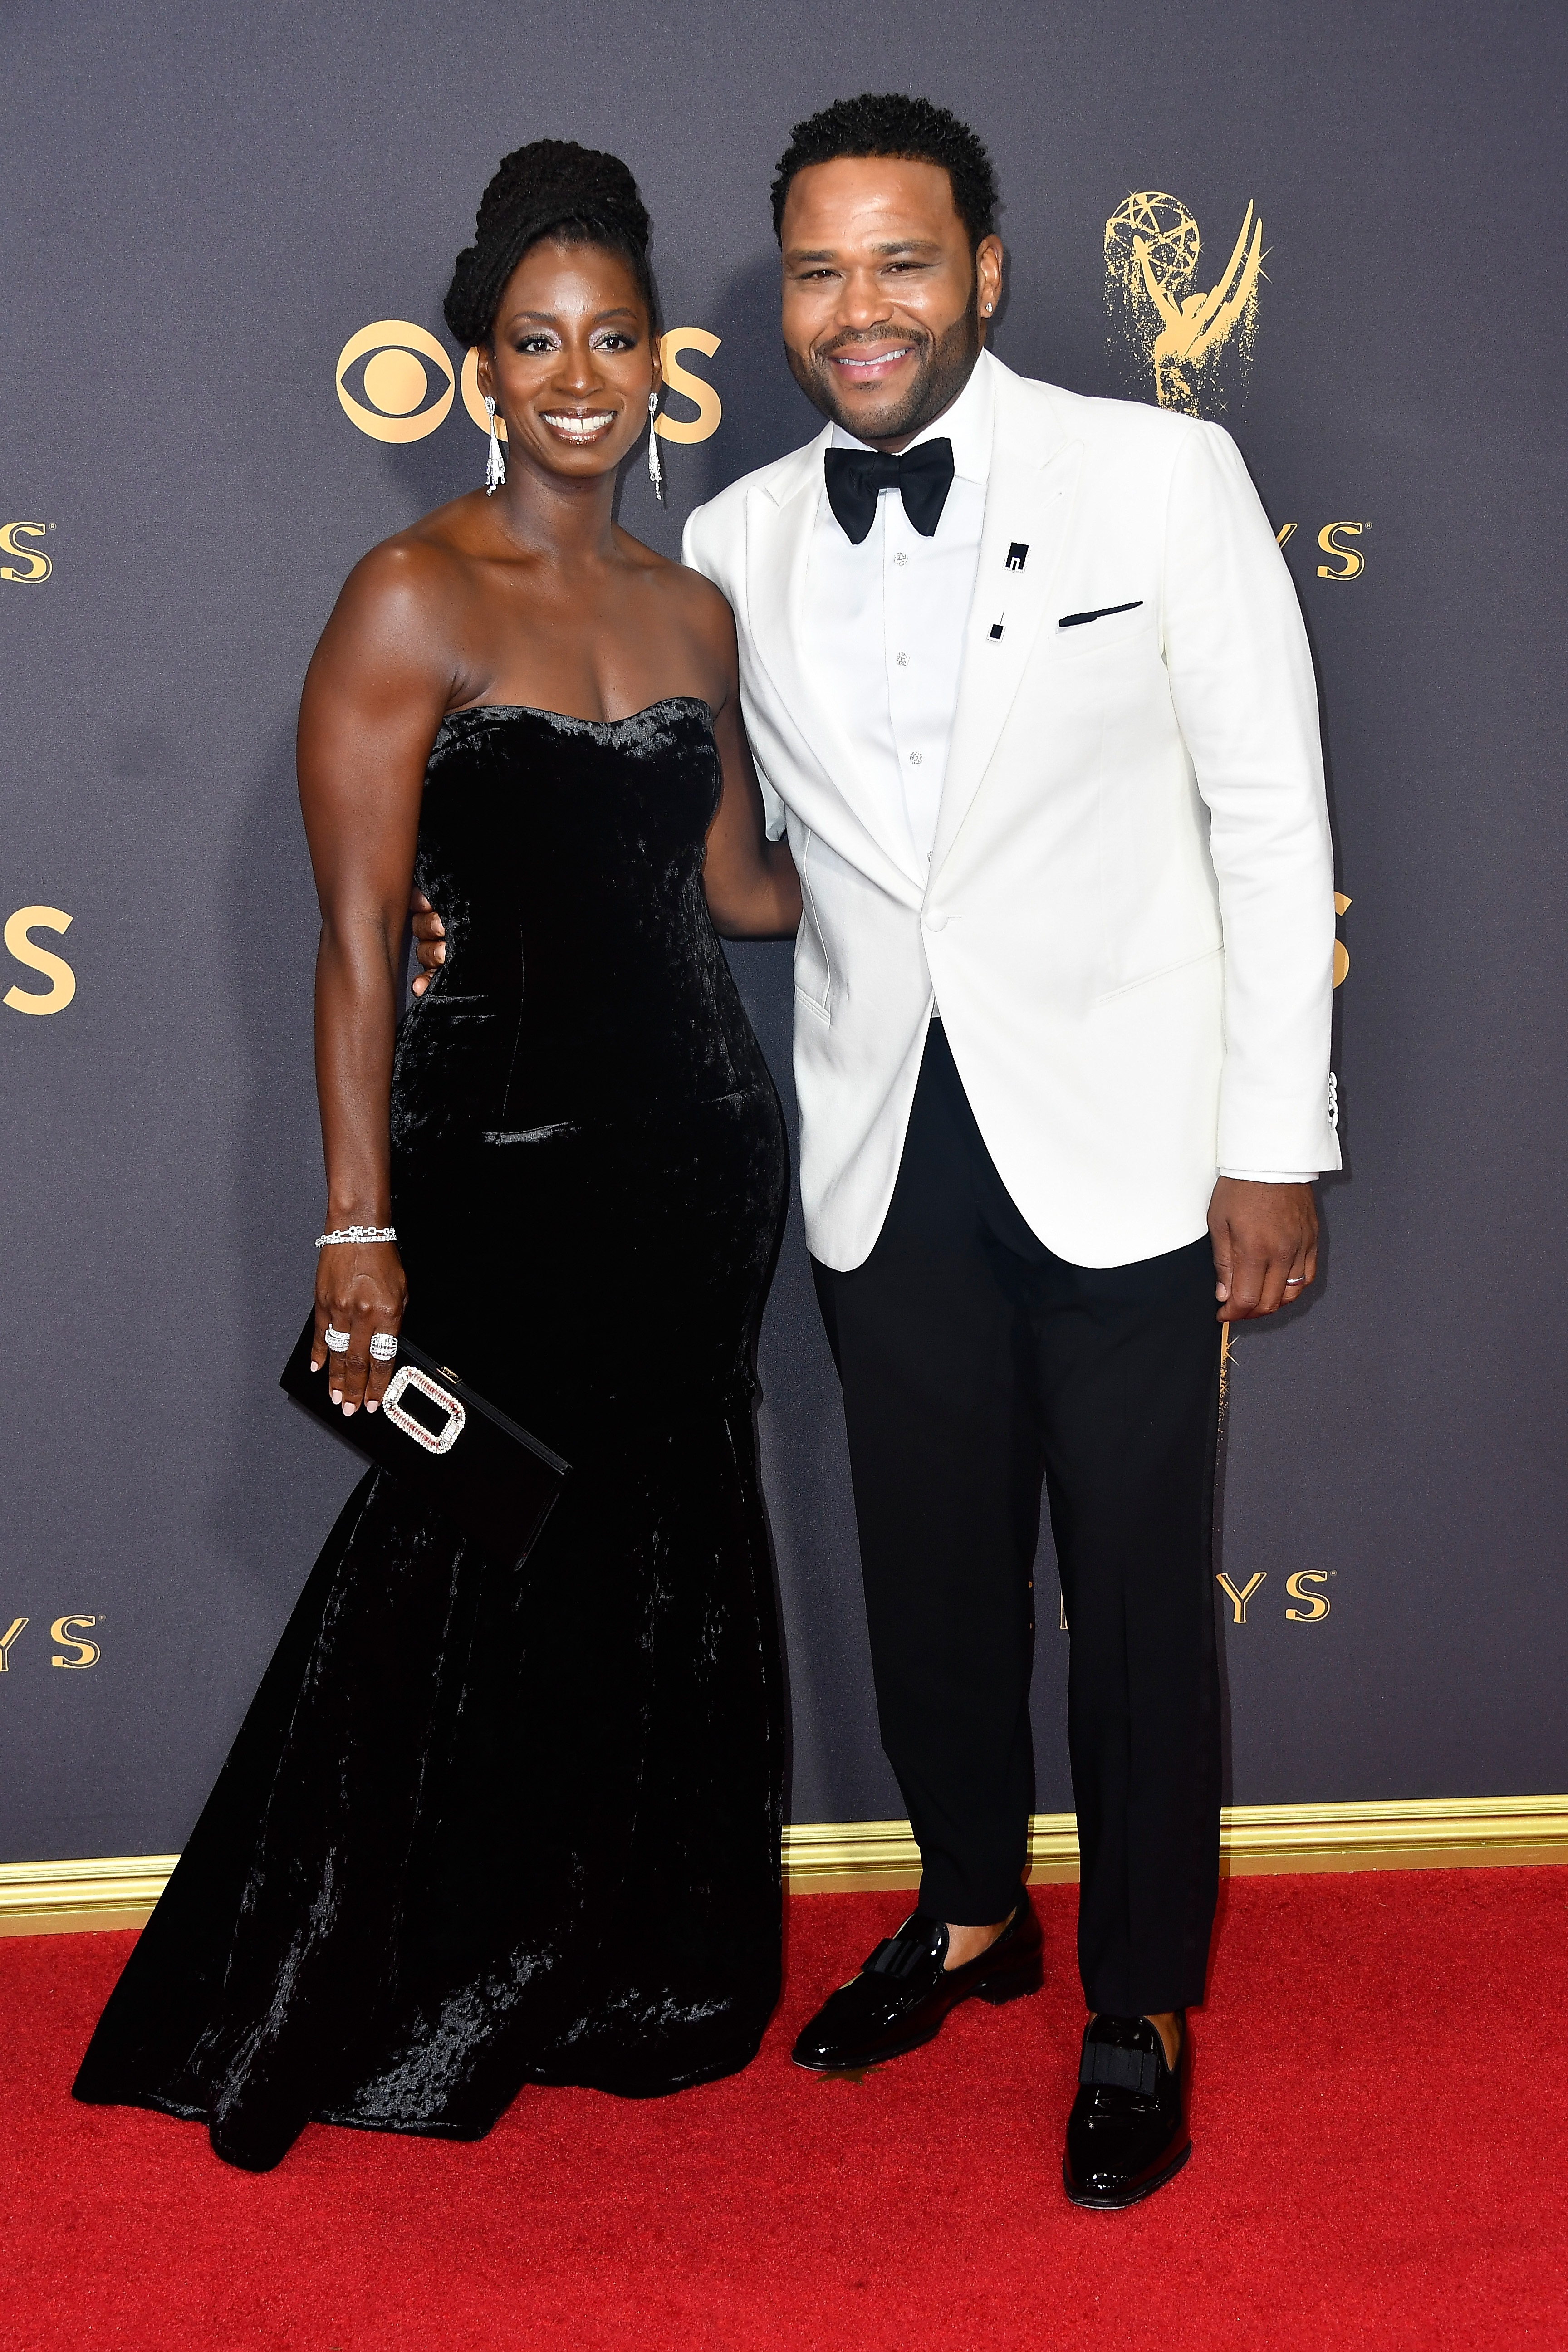 Actor Anthony Anderson (R) and Alvina Stewart attend the 69th Annual Primetime Emmy Awards at Microsoft Theater on September 17, 2017 in Los Angeles, California.